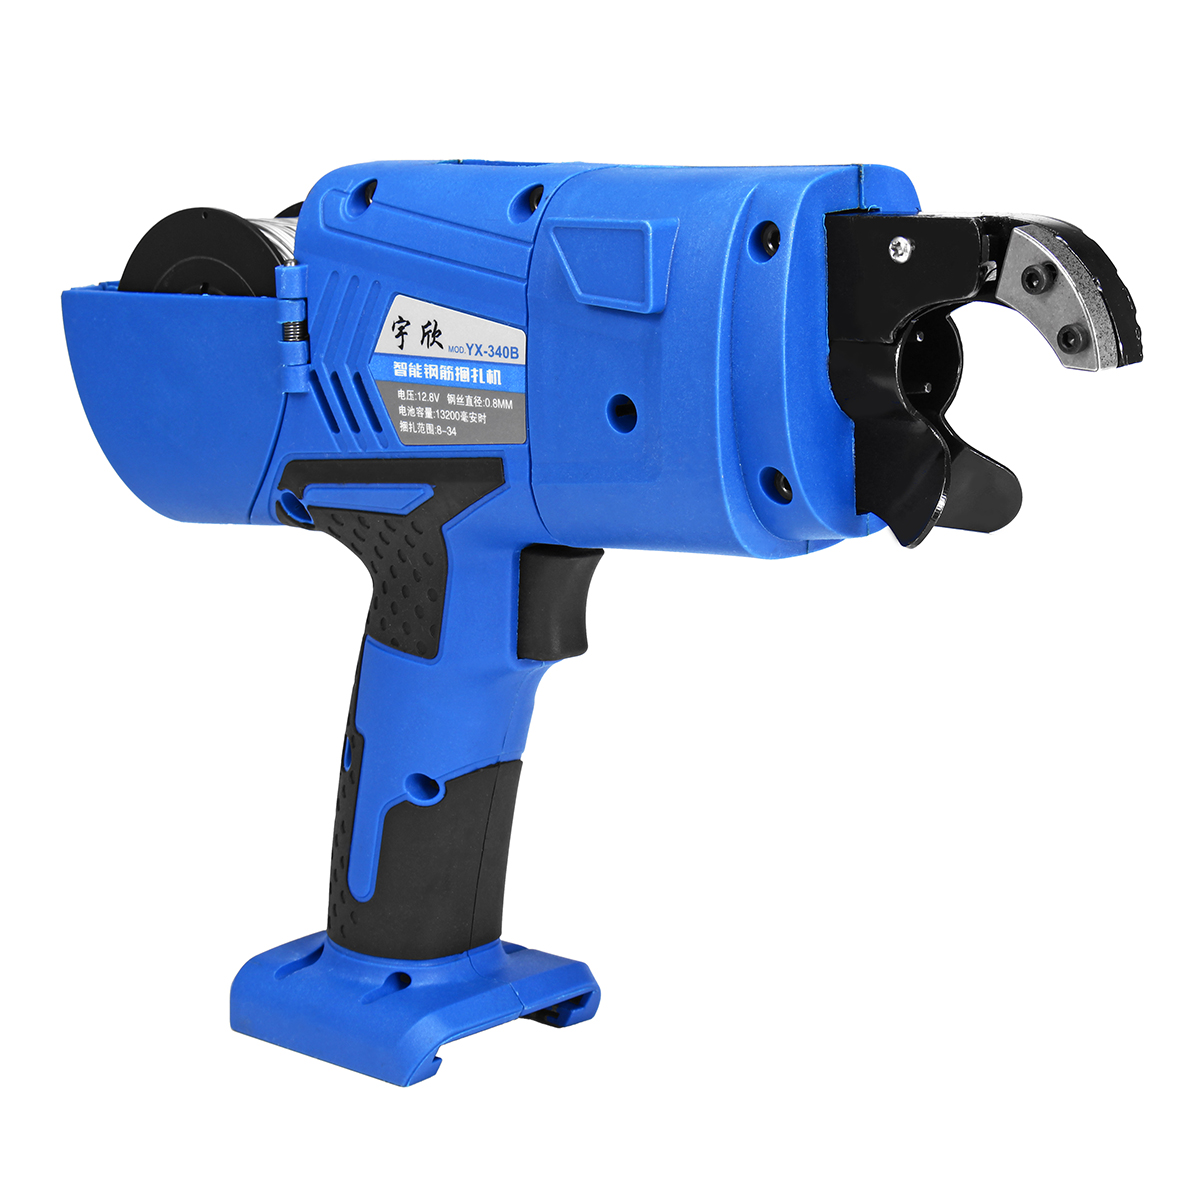 12.8V Automatic Rebar Tying Machine Rebar Tier Tool Strapping 8mm-34mm Wrench